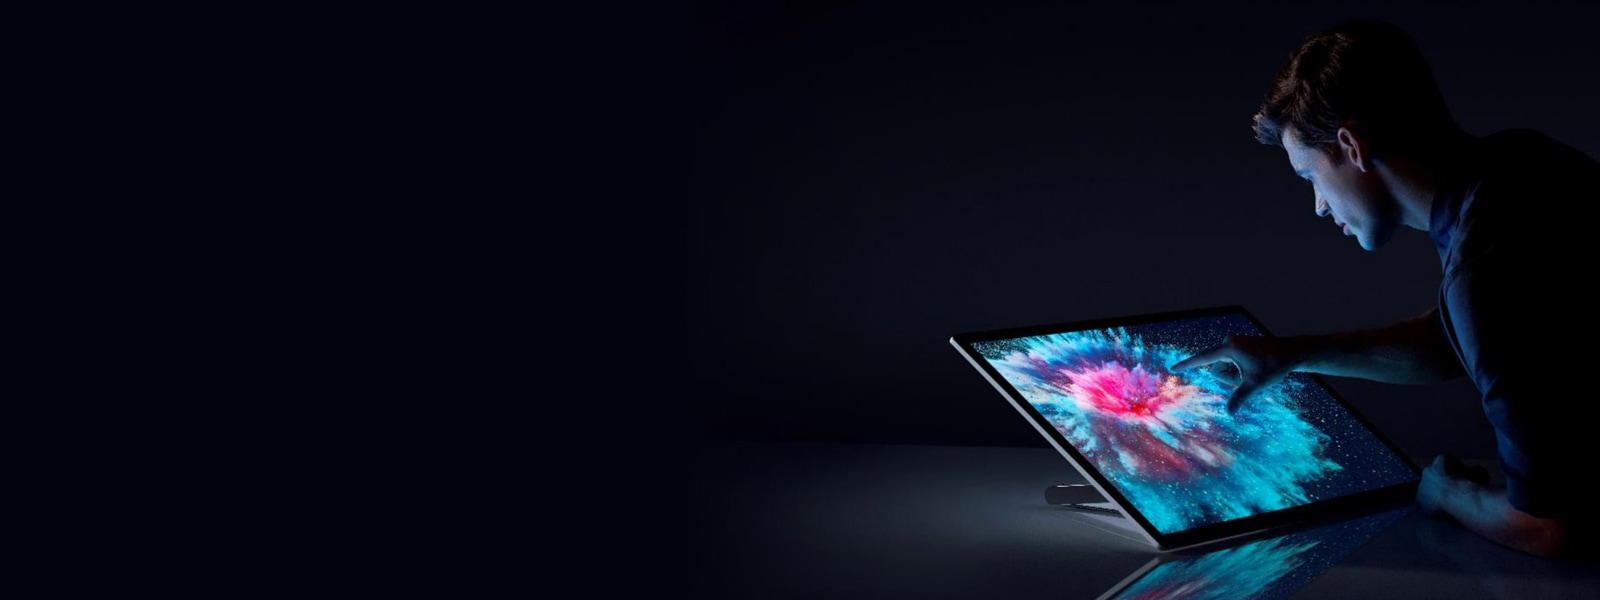 شخص يلمس شاشة جهاز Surface Studio 2